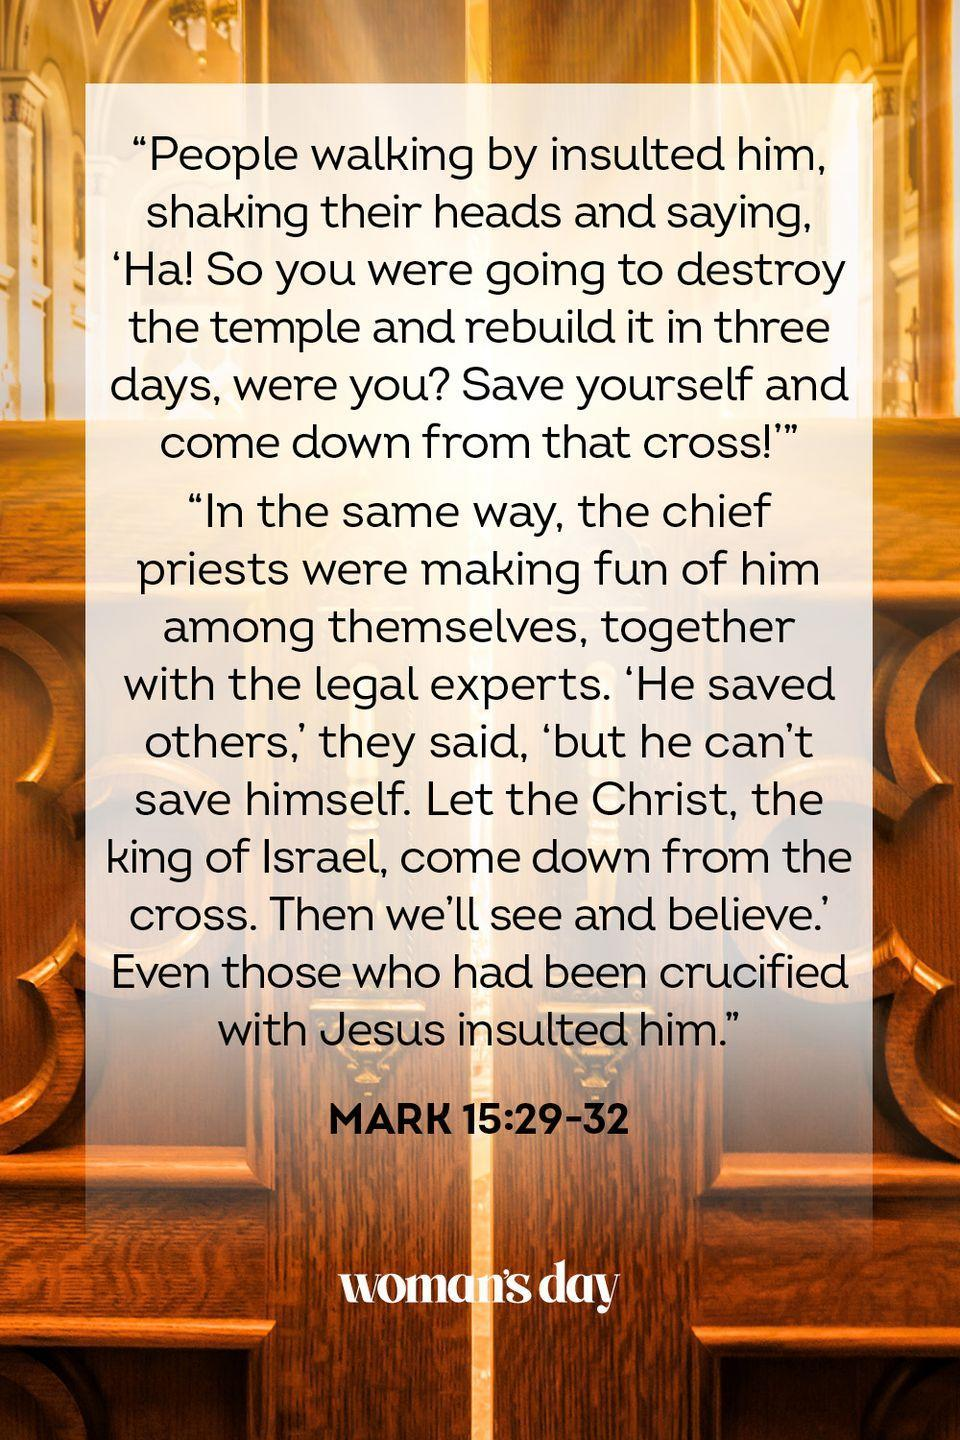 "<p>""People walking by insulted him, shaking their heads and saying, 'Ha! So you were going to destroy the temple and rebuild it in three days, were you?Save yourself and come down from that cross!'""</p><p>""In the same way, the chief priests were making fun of him among themselves, together with the legal experts. 'He saved others,' they said, 'but he can't save himself. Let the Christ, the king of Israel, come down from the cross. Then we'll see and believe.' Even those who had been crucified with Jesus insulted him."" — Mark 15:29-32</p>"